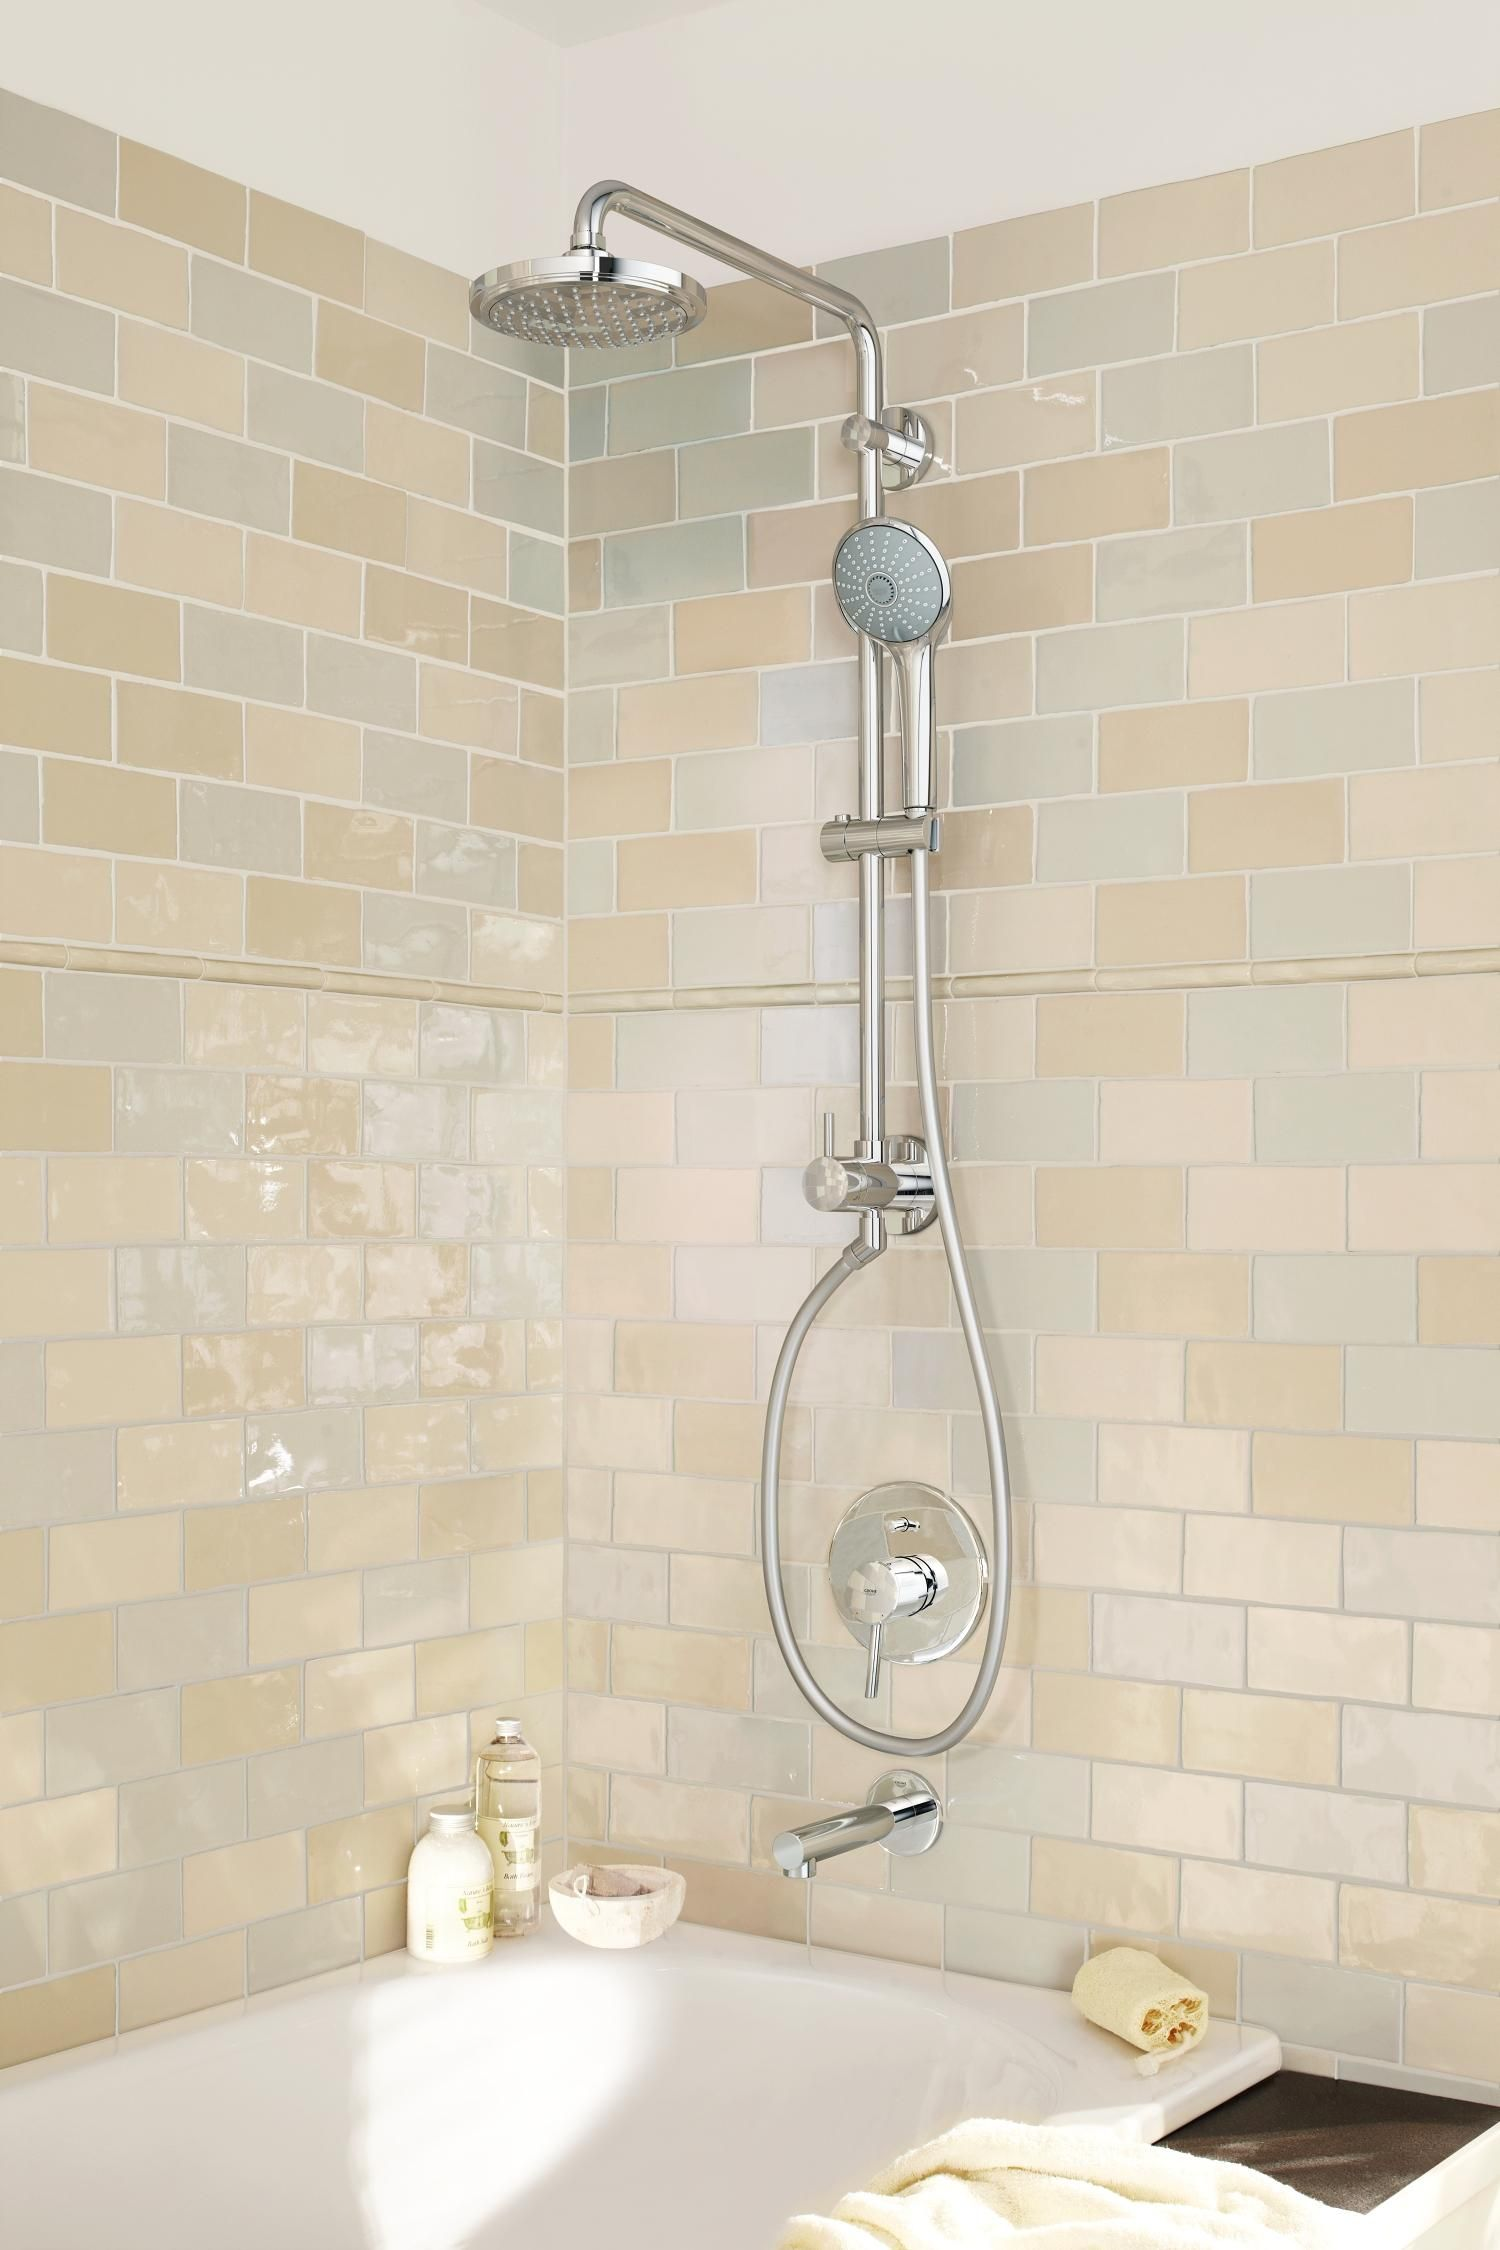 Ideal For Retrofit Or Renovation The Grohe Retro Fit Shower System Installs Easily And Quickly Simply Replace The Exi Shower Systems Shower Heads Shower Tile